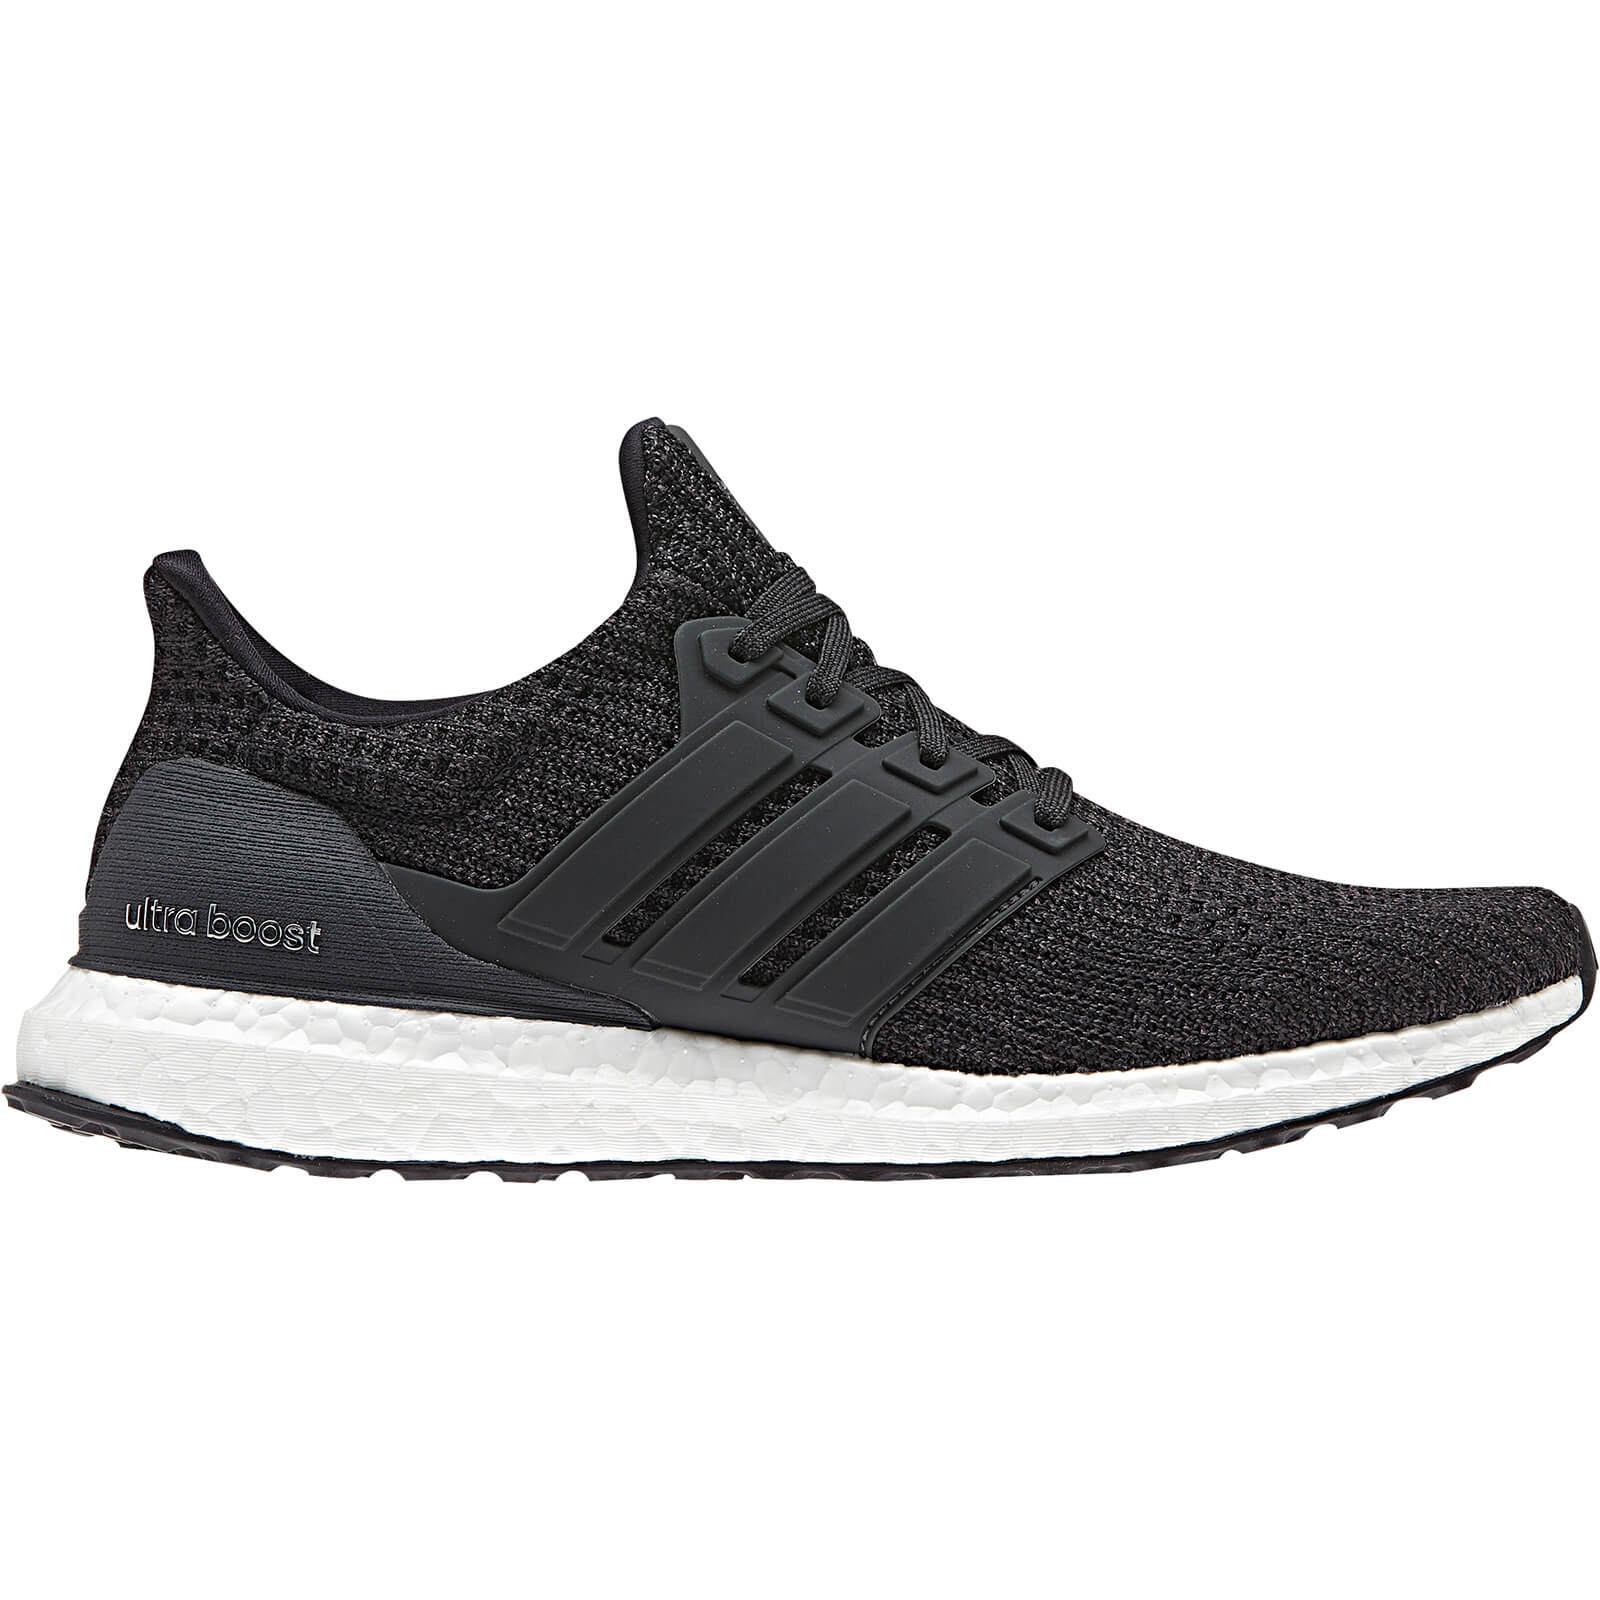 5cbd8e8be99 adidas Ultraboost Running Shoes - Carbon